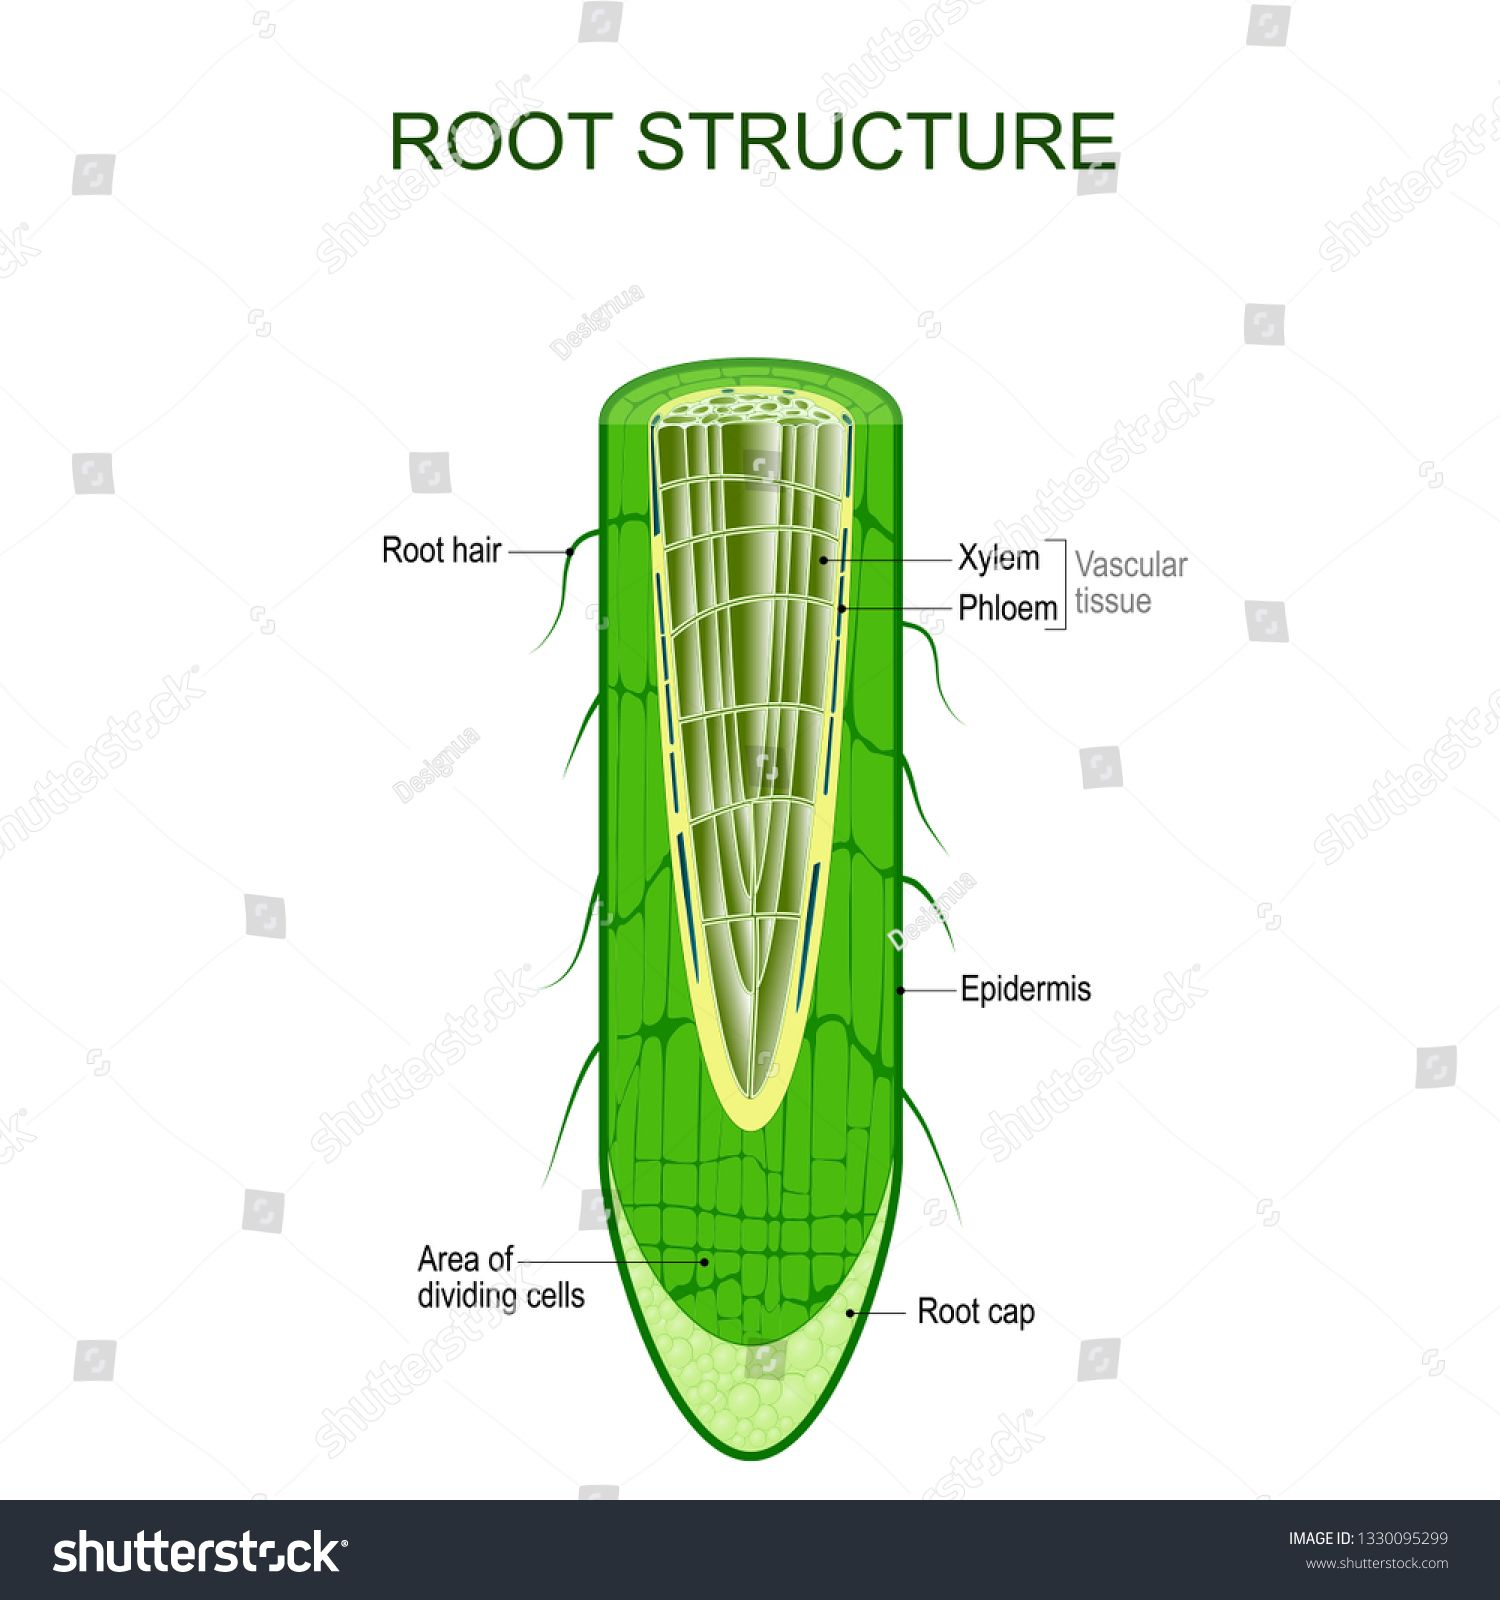 Simple Xylem Cell Diagram